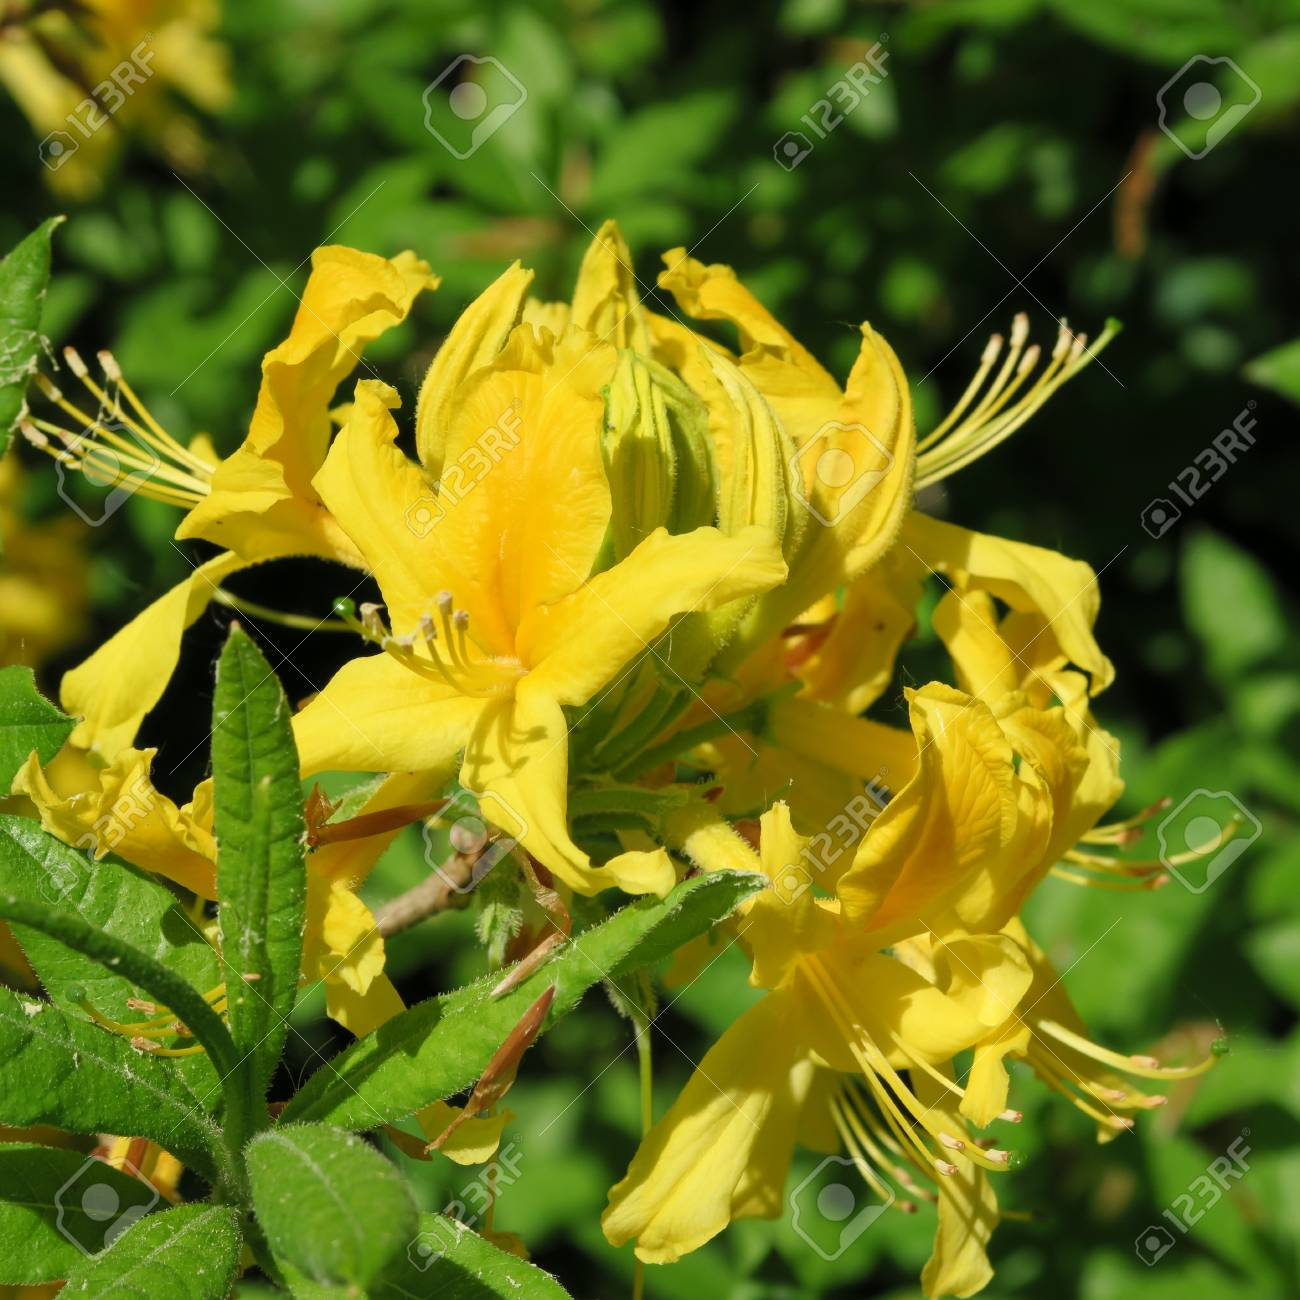 Many Small Yellow Rhododendron Flowers On A Large Shrub Stock